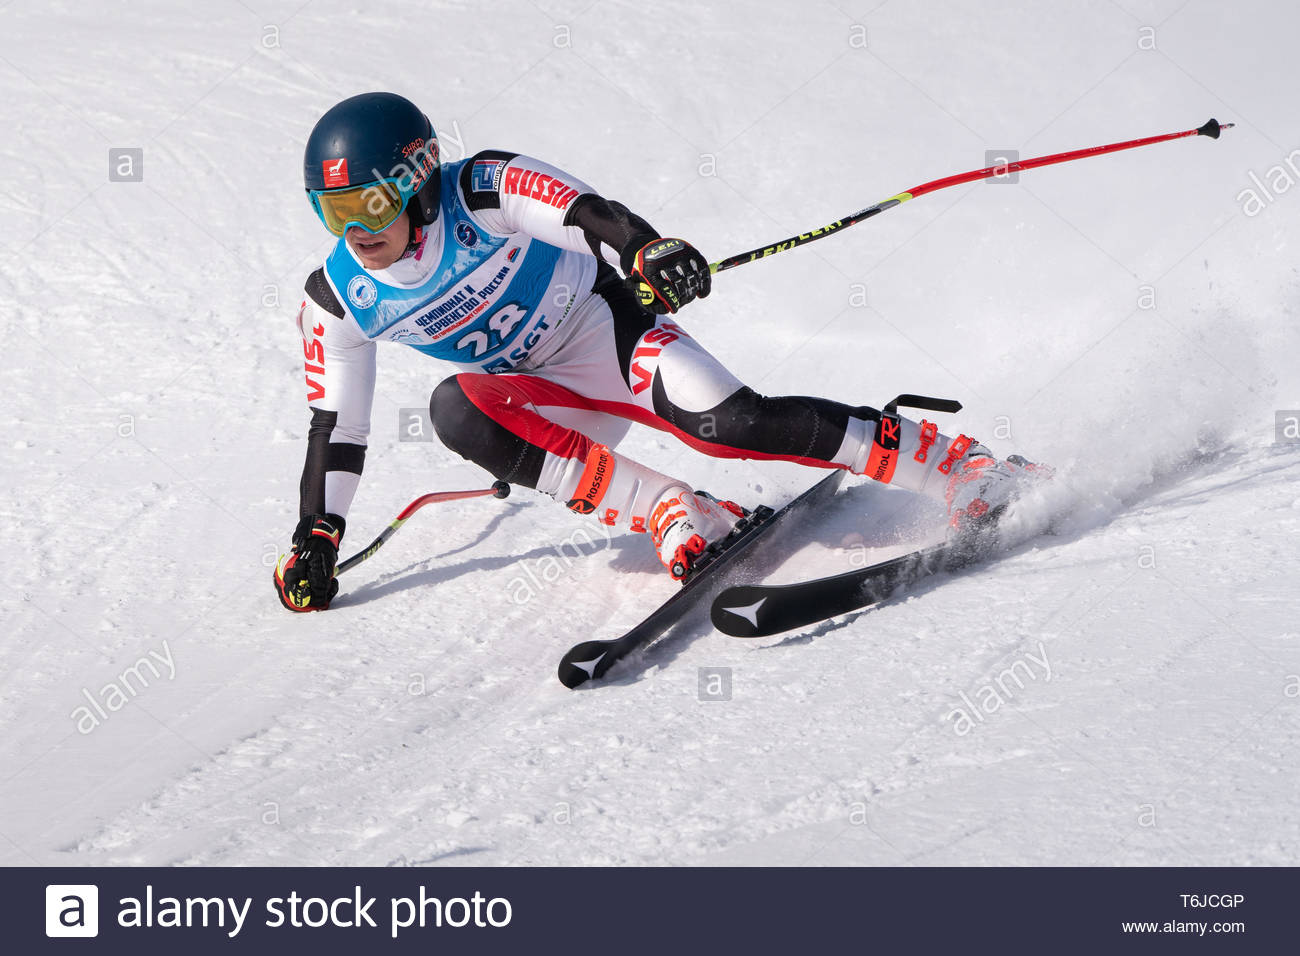 KAMCHATKA PENINSULA, RUSSIA - APR 1, 2019: Mountain skier Egor Sazonov (Kamchatka Krai) skiing down mount slope. Russian Alpine Skiing Cup, Internatio - Stock Image